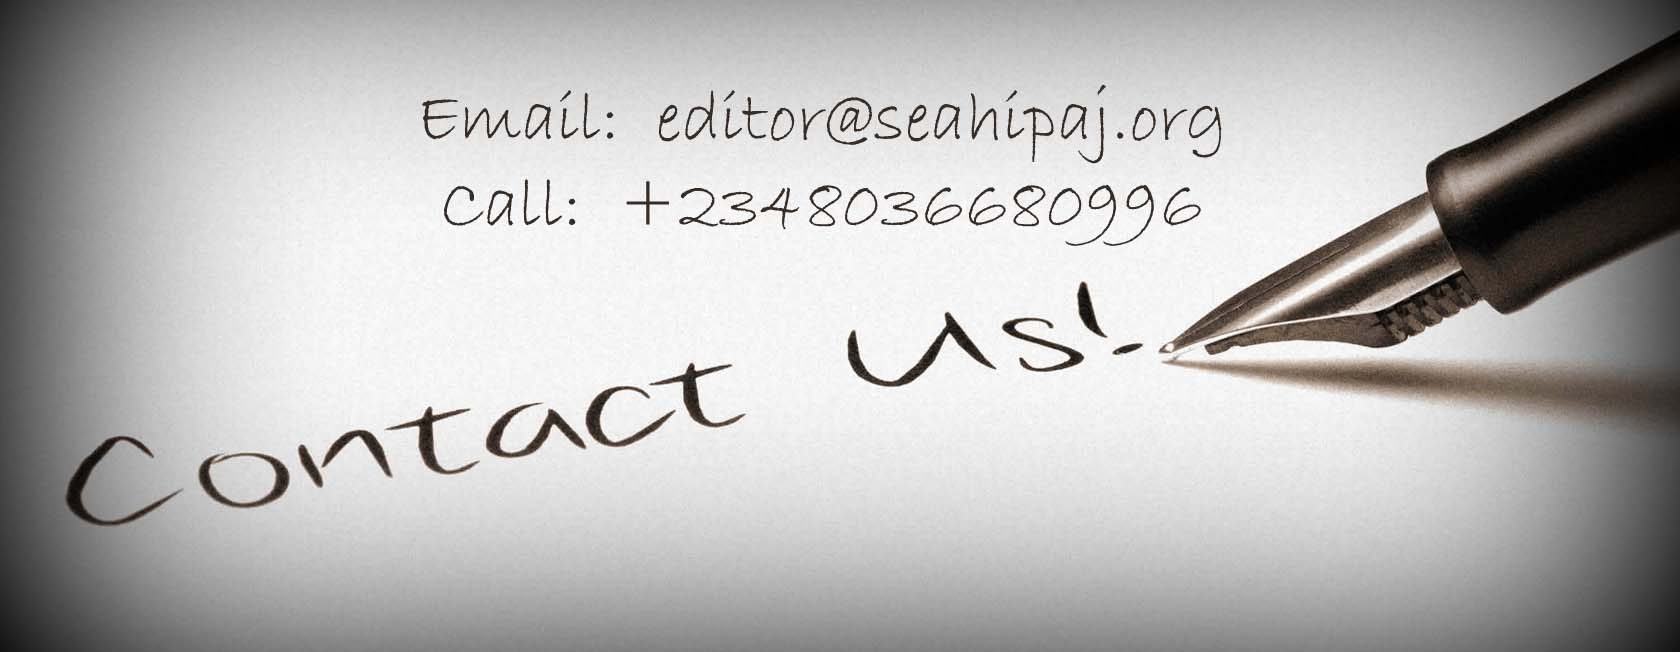 contact-us-seahipaj